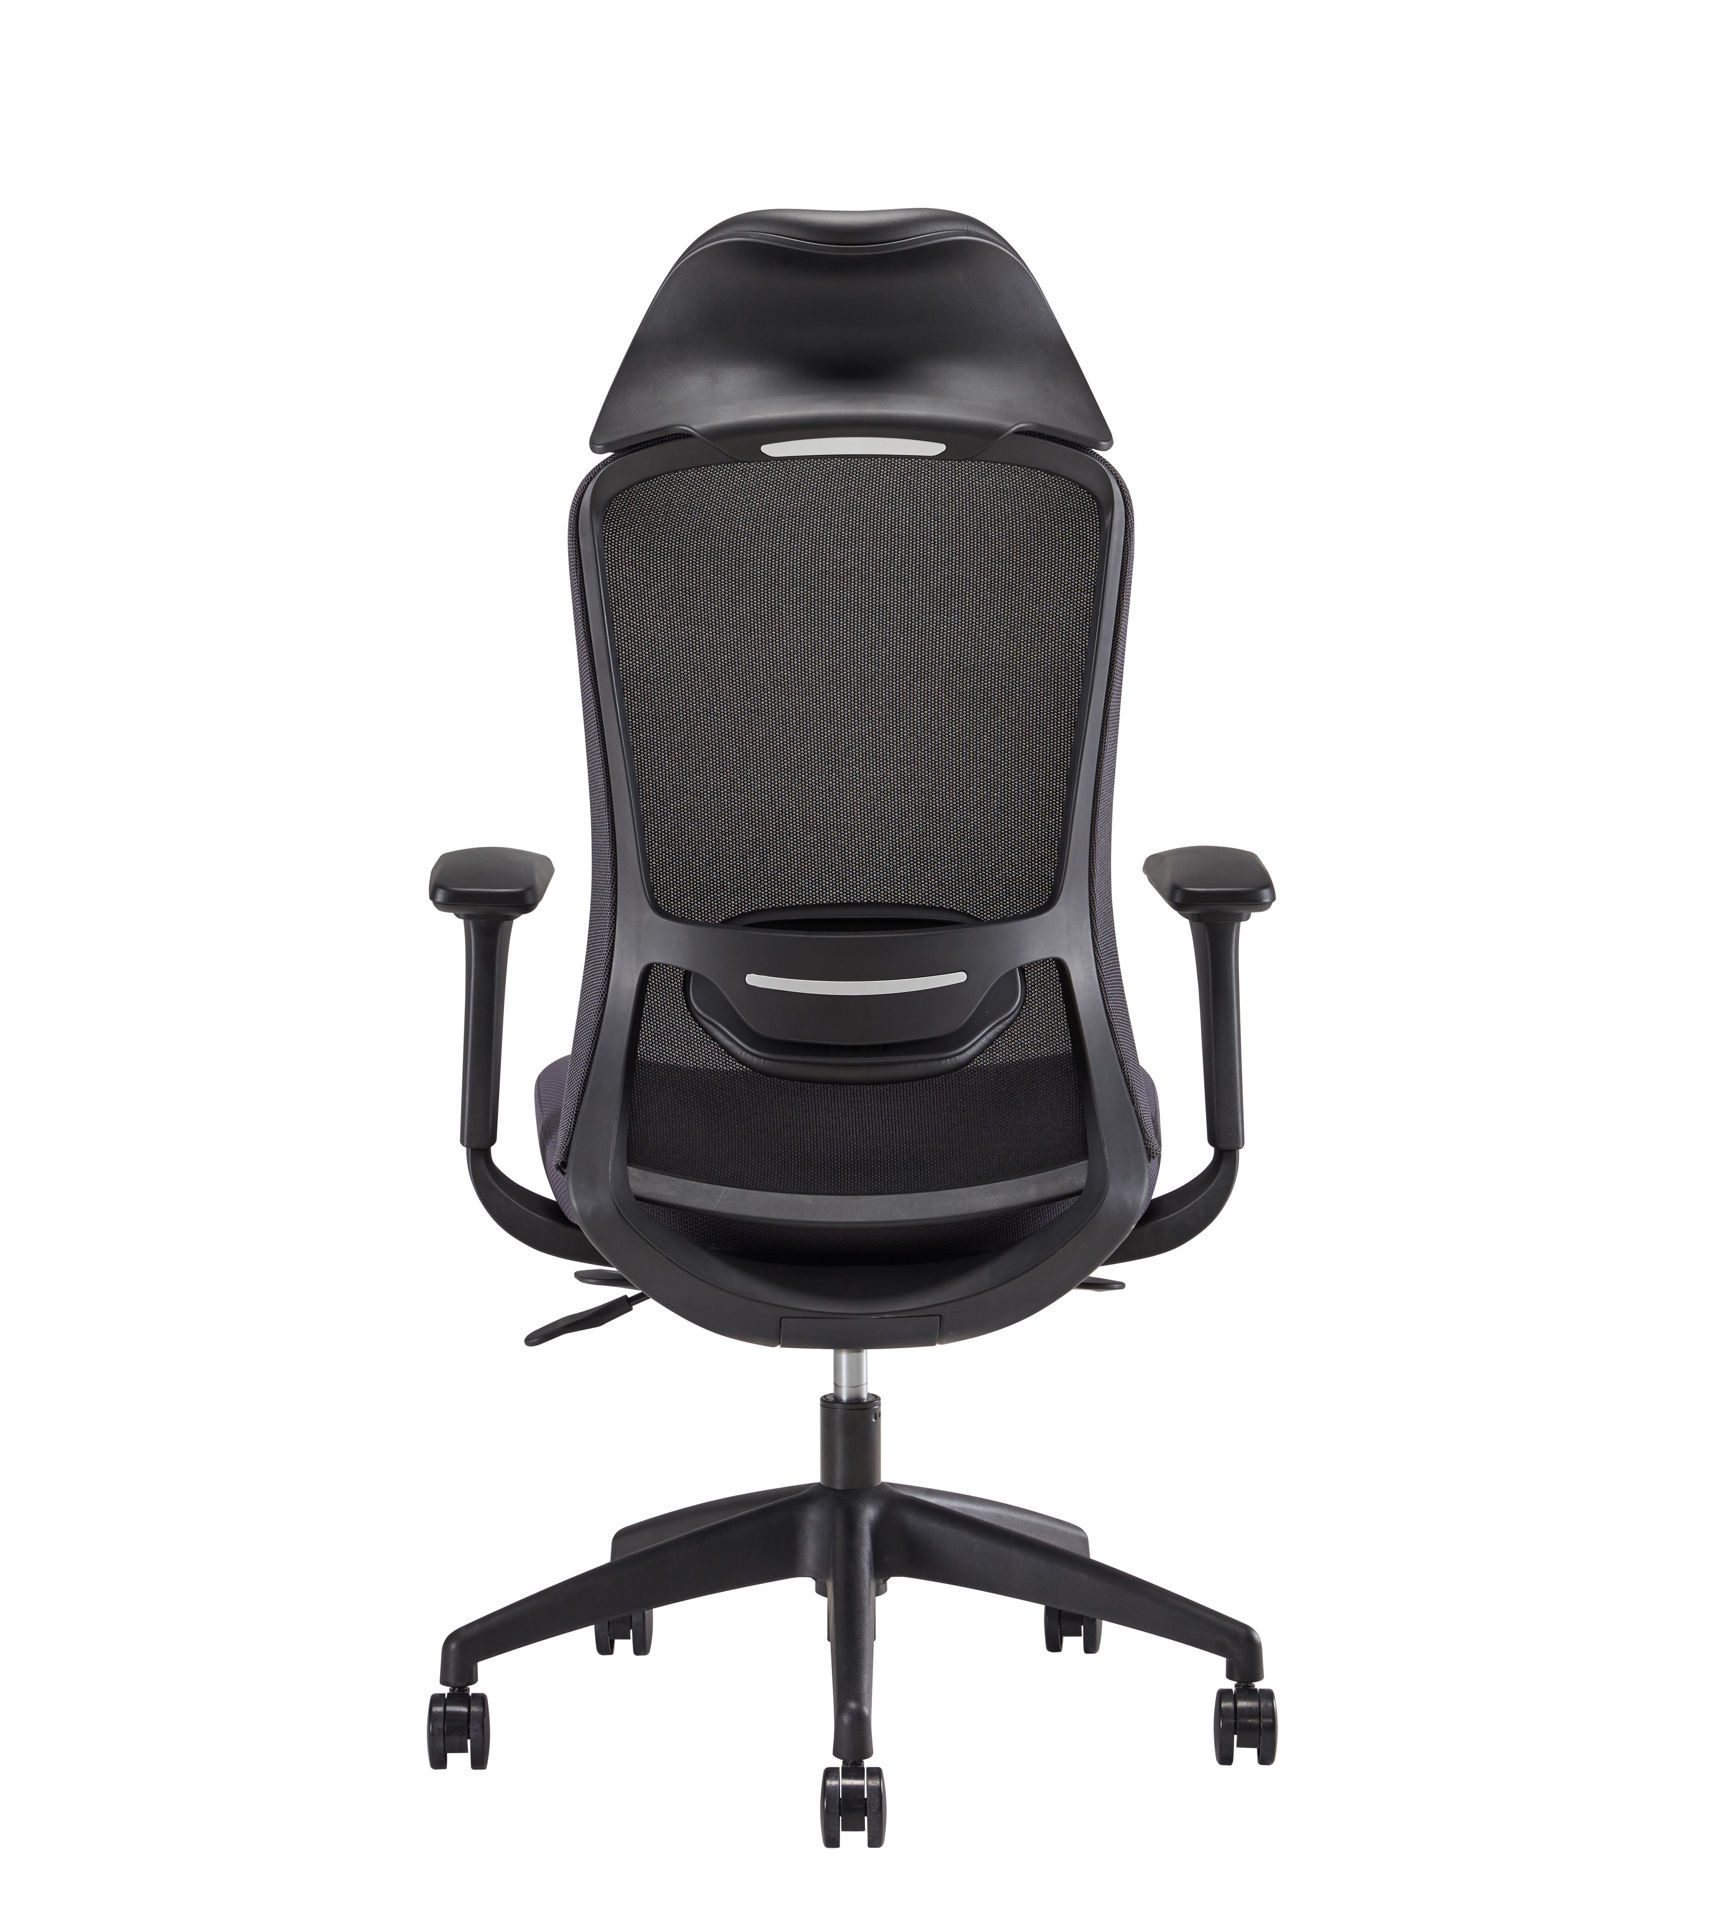 Picture of AA-5315BK Anji (Vogue) High Back Chair w/Headrest - Black